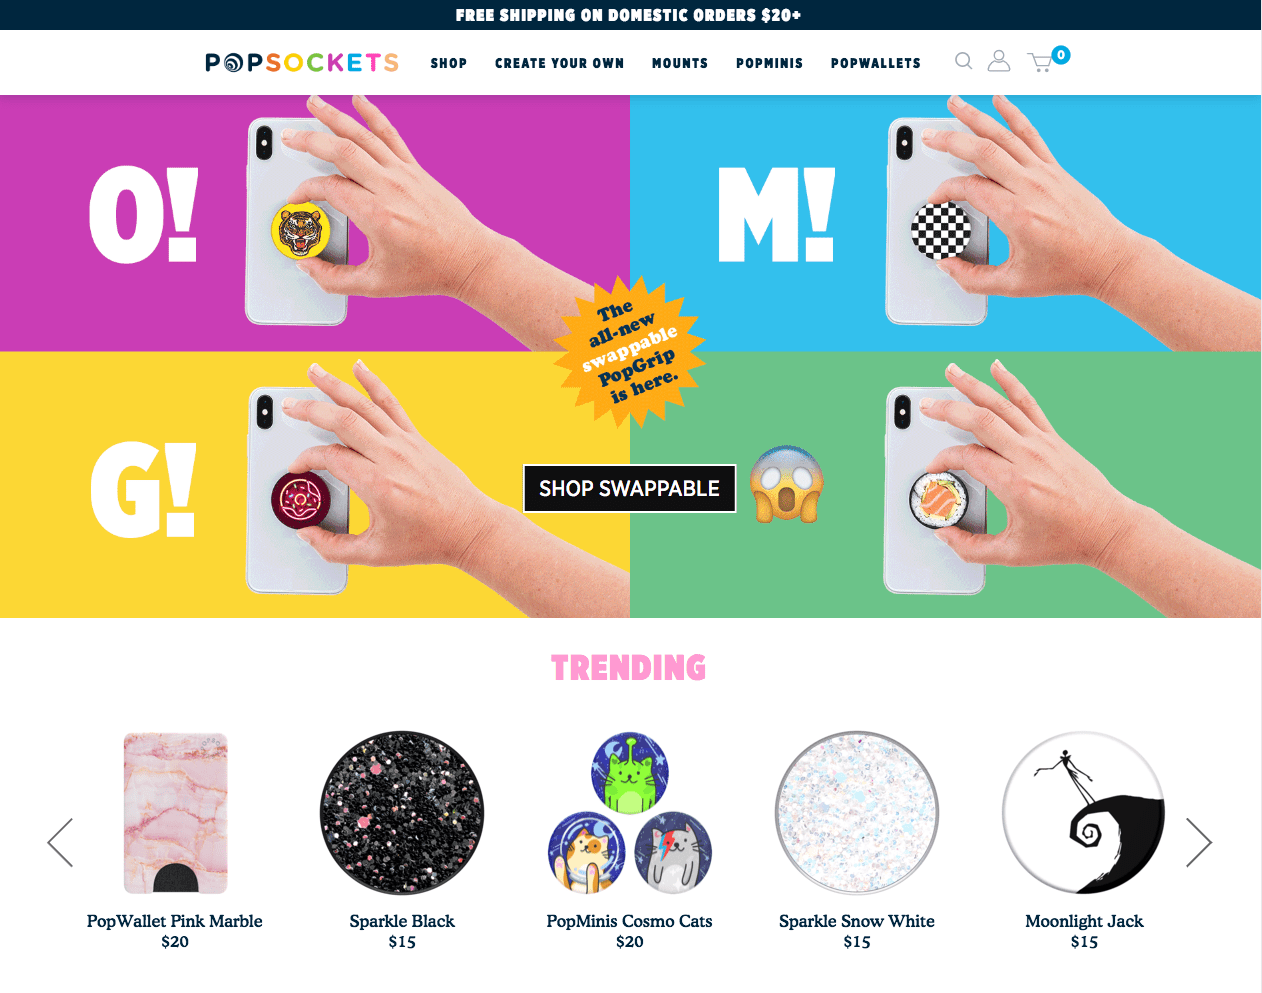 popsockets homepage design